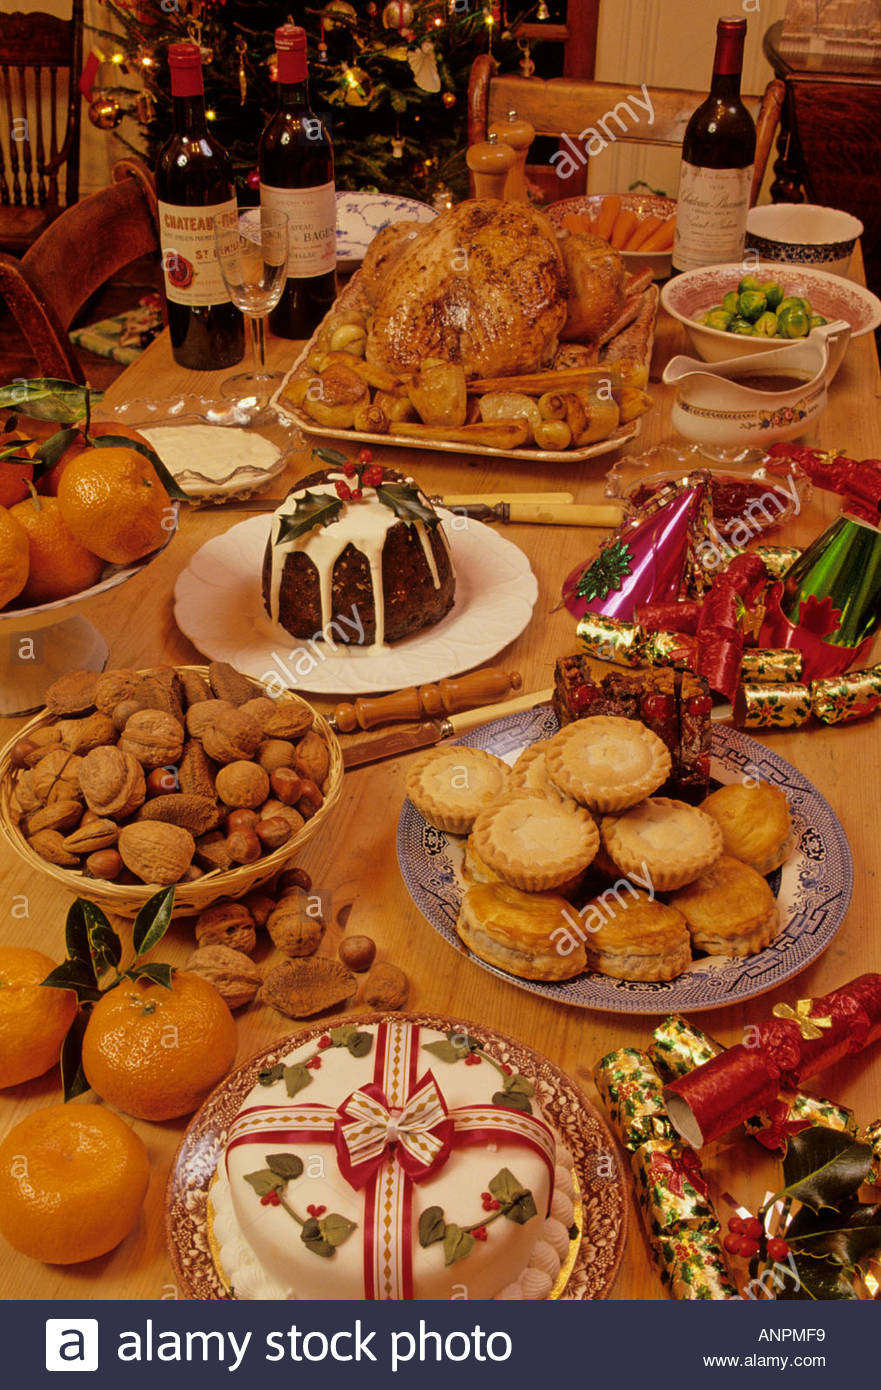 Christmas In England Traditions.A Display Of Traditional Foods Eaten At Christmas Time In